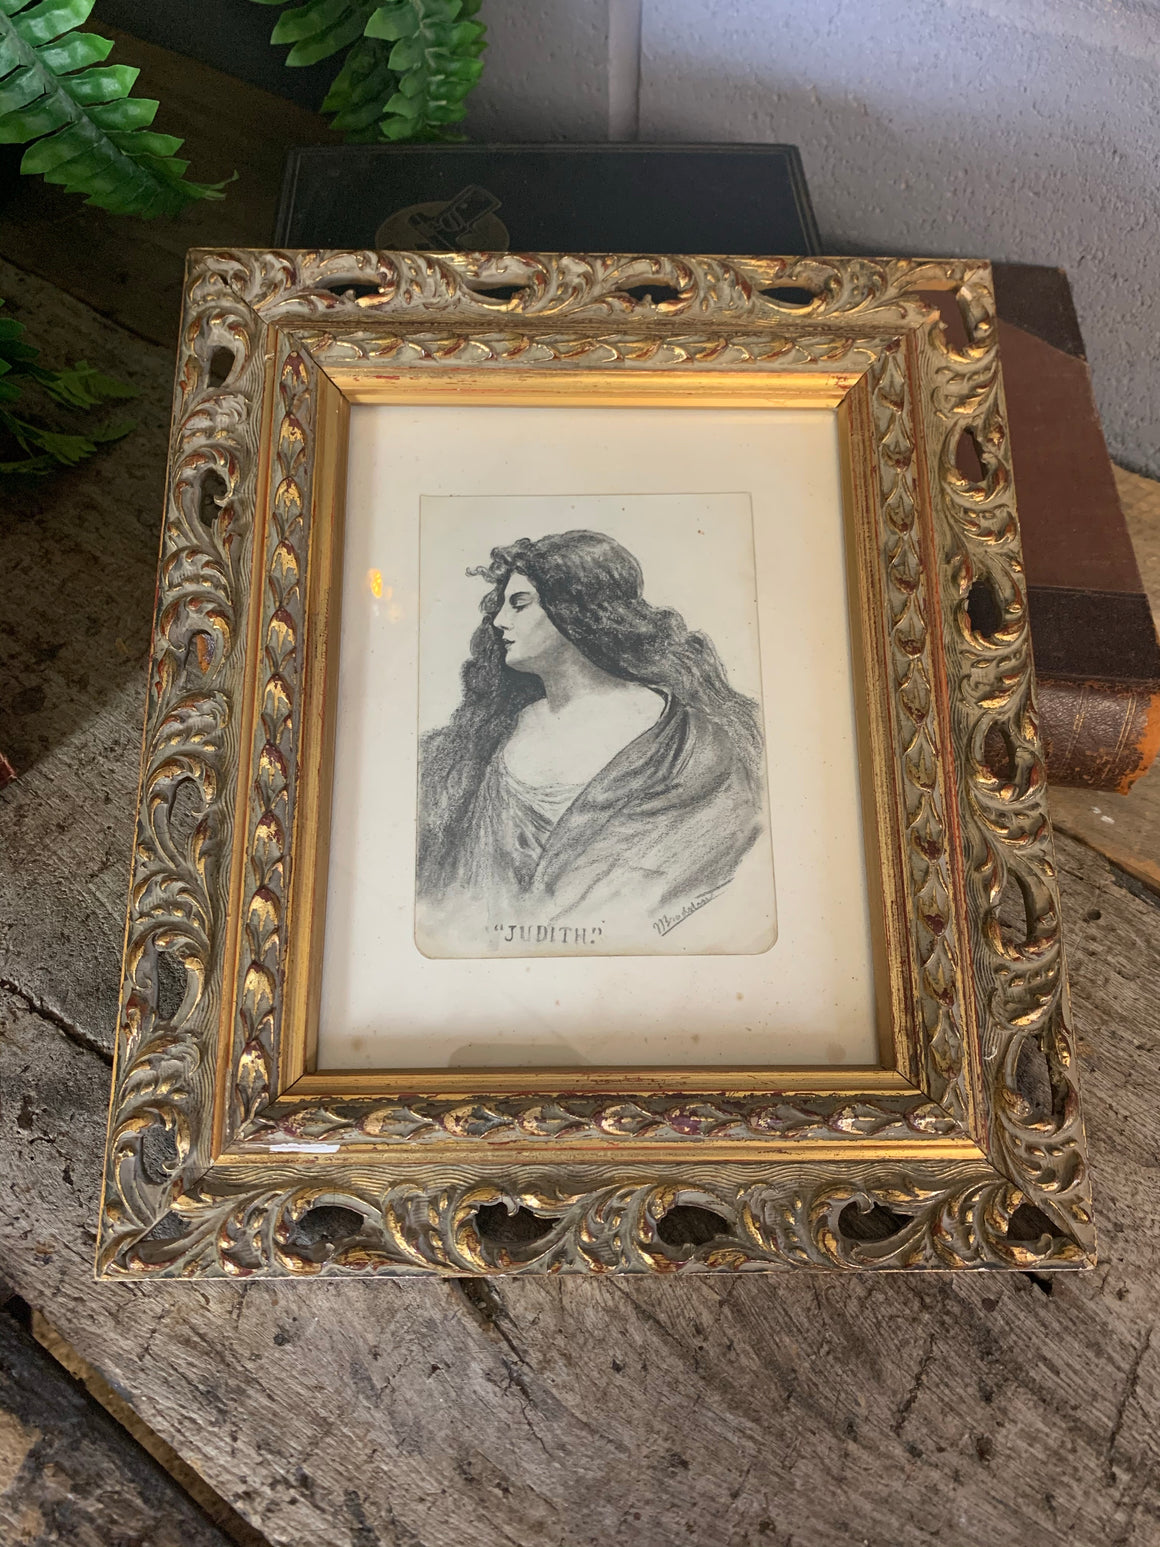 An Art Nouveau framed and signed pencil portrait of a woman